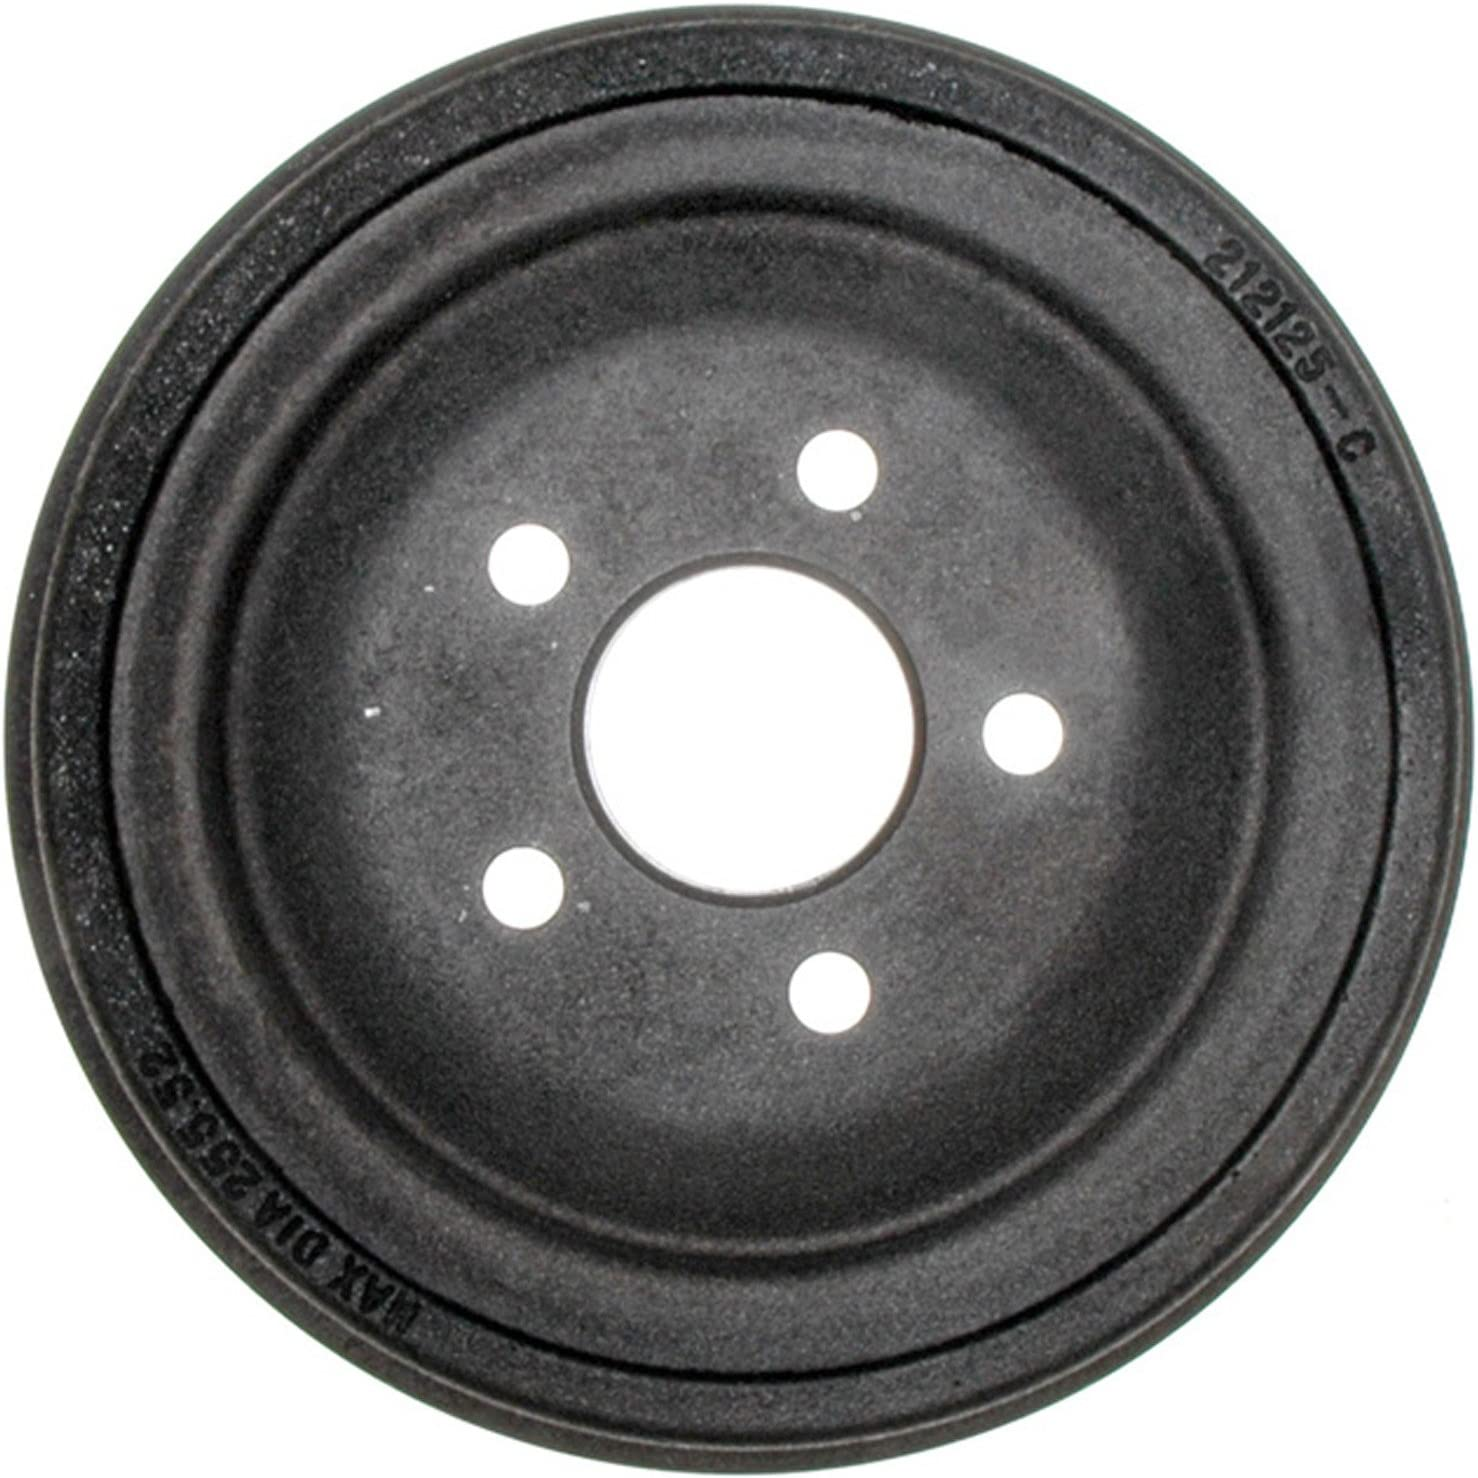 ACDelco 18B490 Professional Durastop Rear Brake Drum Assembly